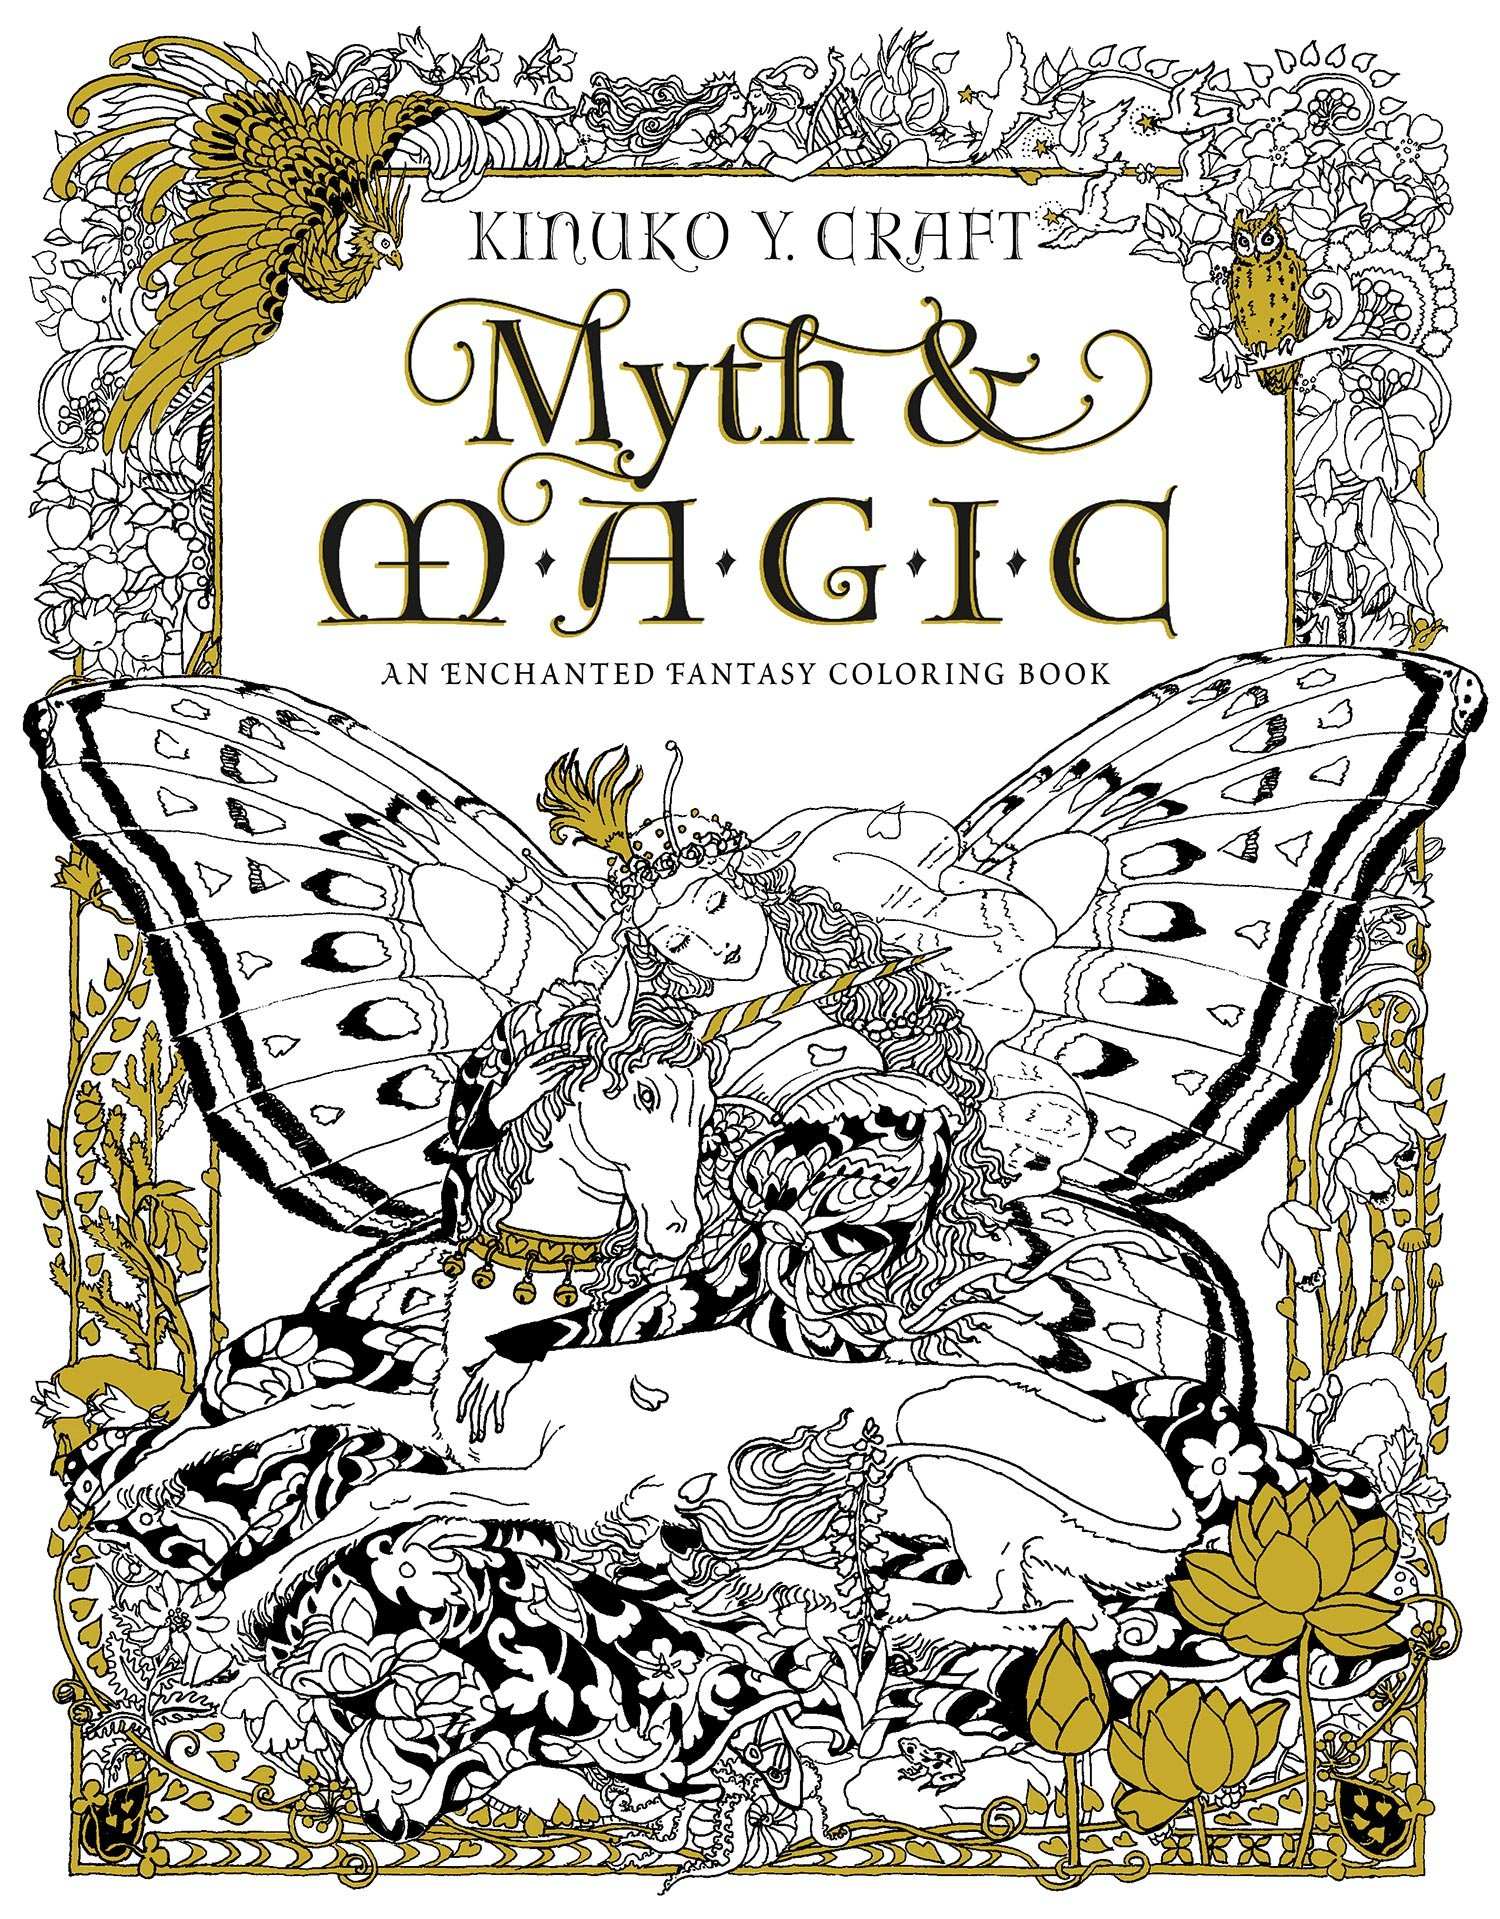 A fun magic coloring book amazon - Amazon Com Myth Magic An Enchanted Fantasy Coloring Book By Kinuko Y Craft 9781631362439 Kinuko Y Craft Amber Lotus Publishing Books